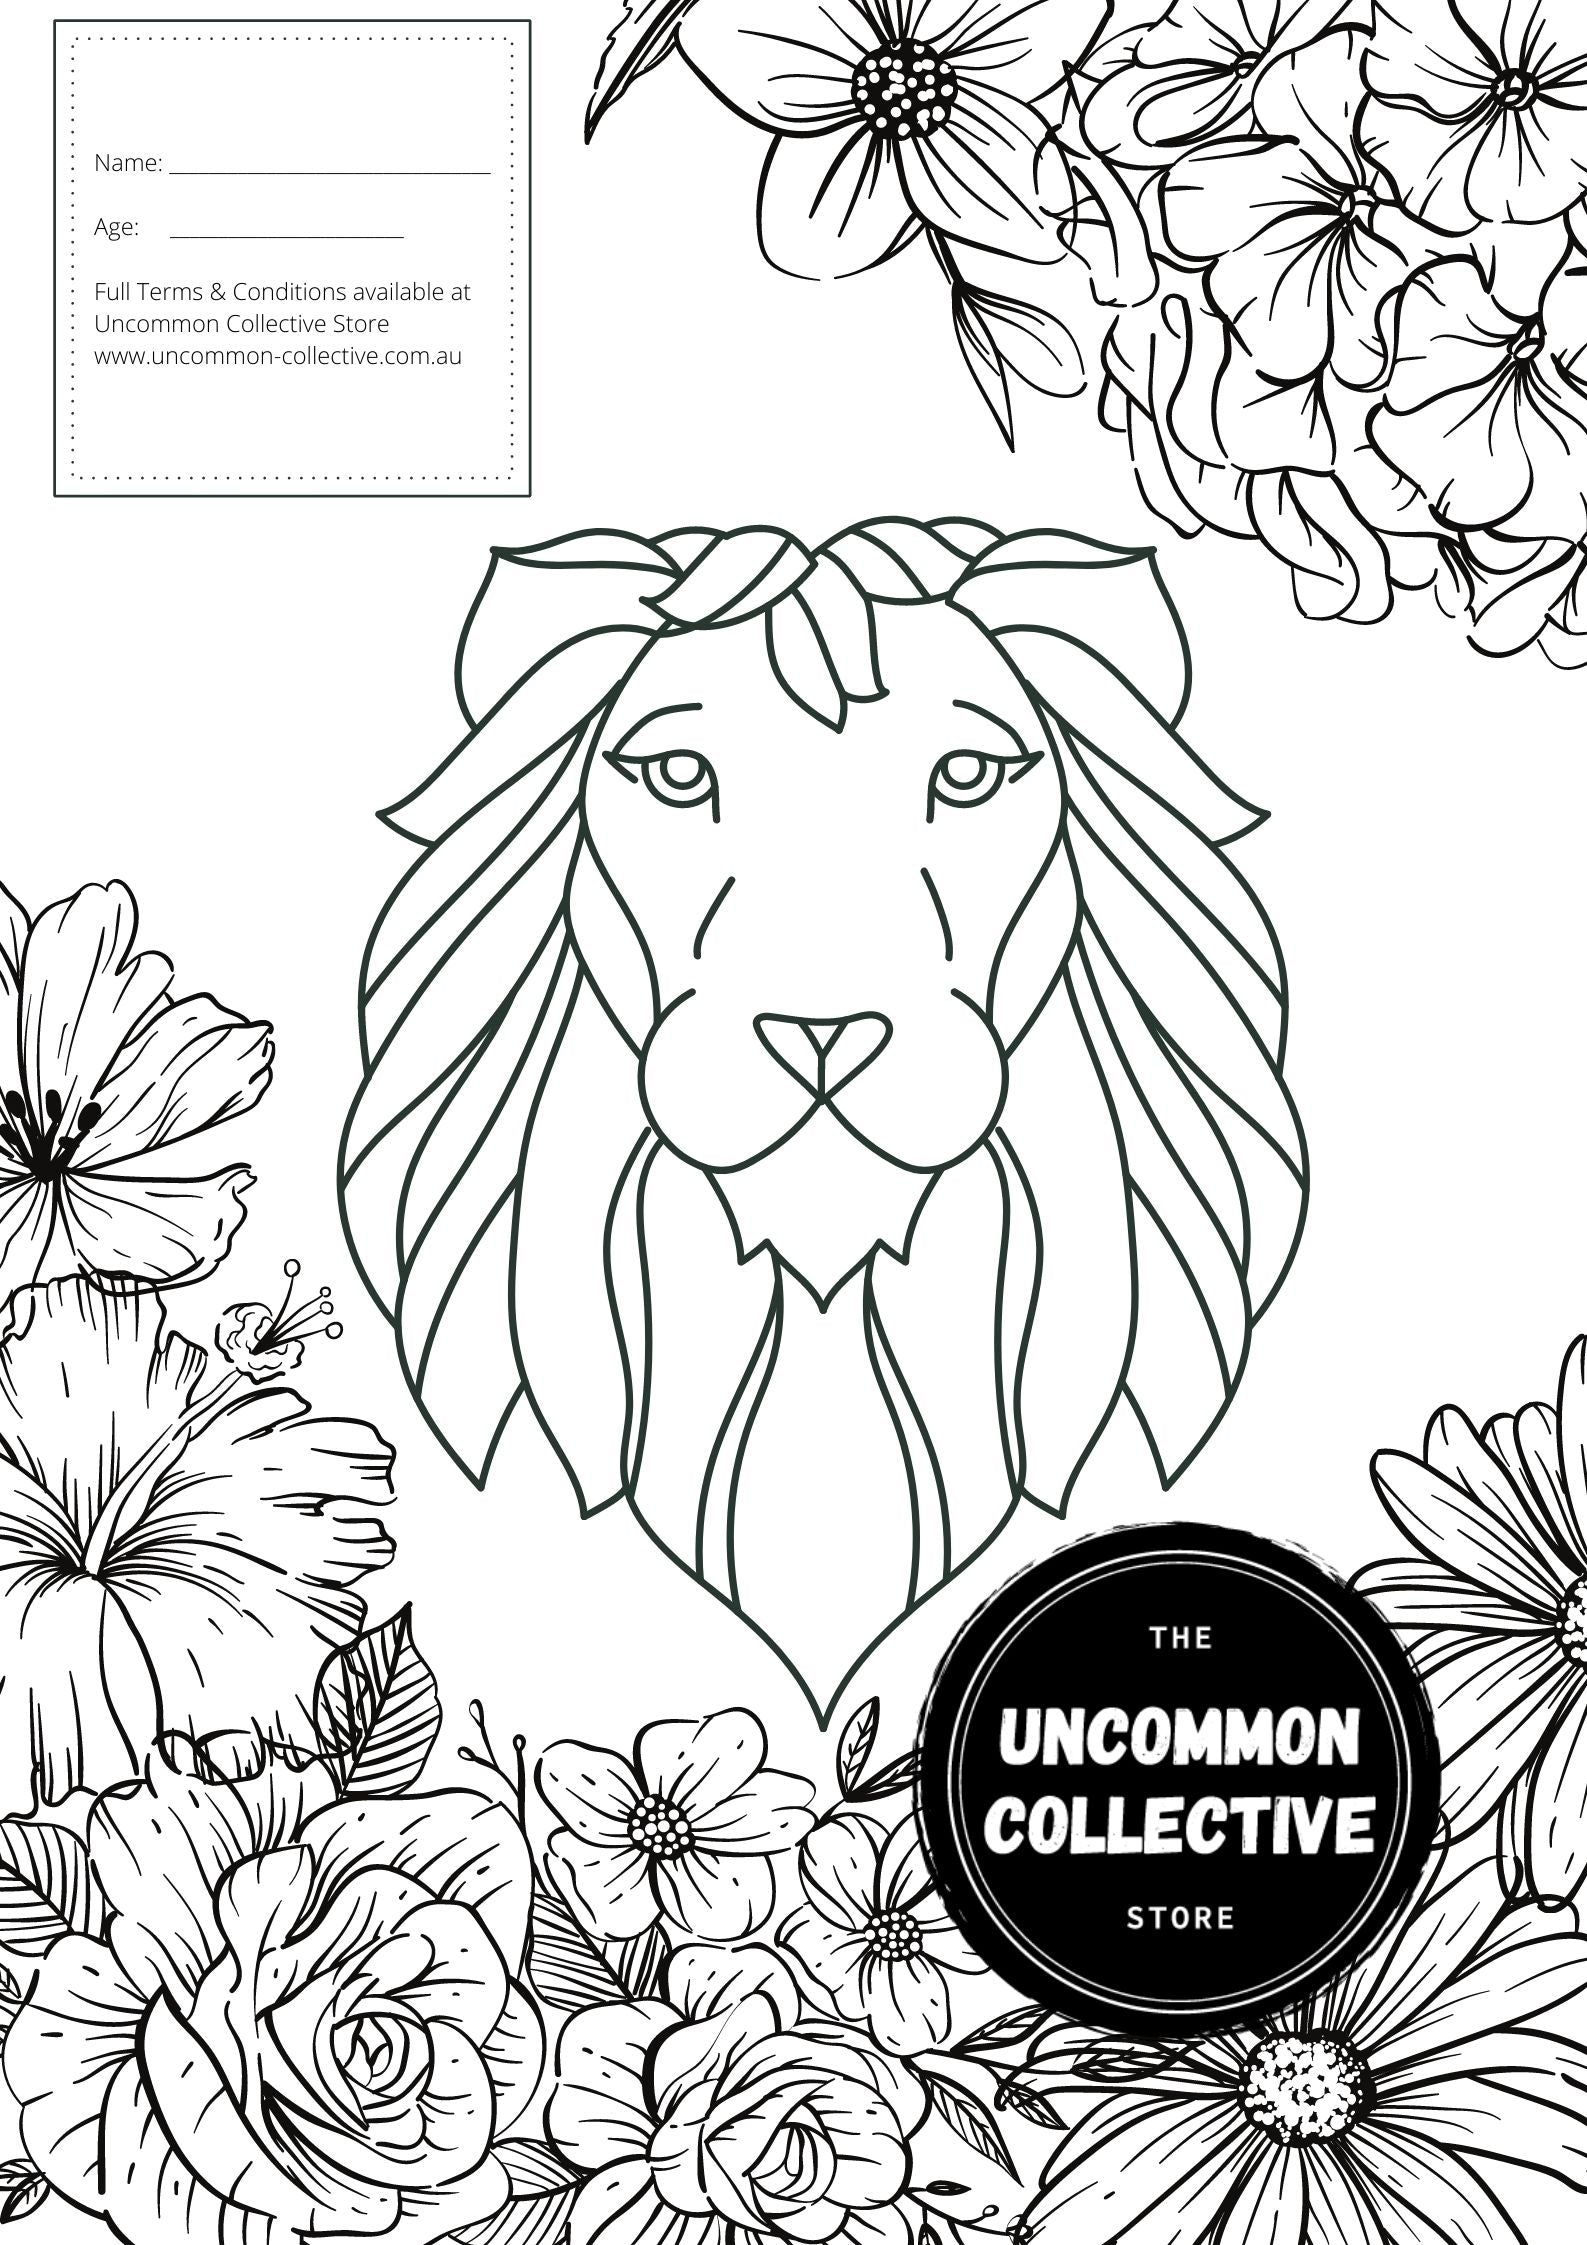 Colour & Win Eugy's at Uncommon Collective Store Castle Hill these School Holidays